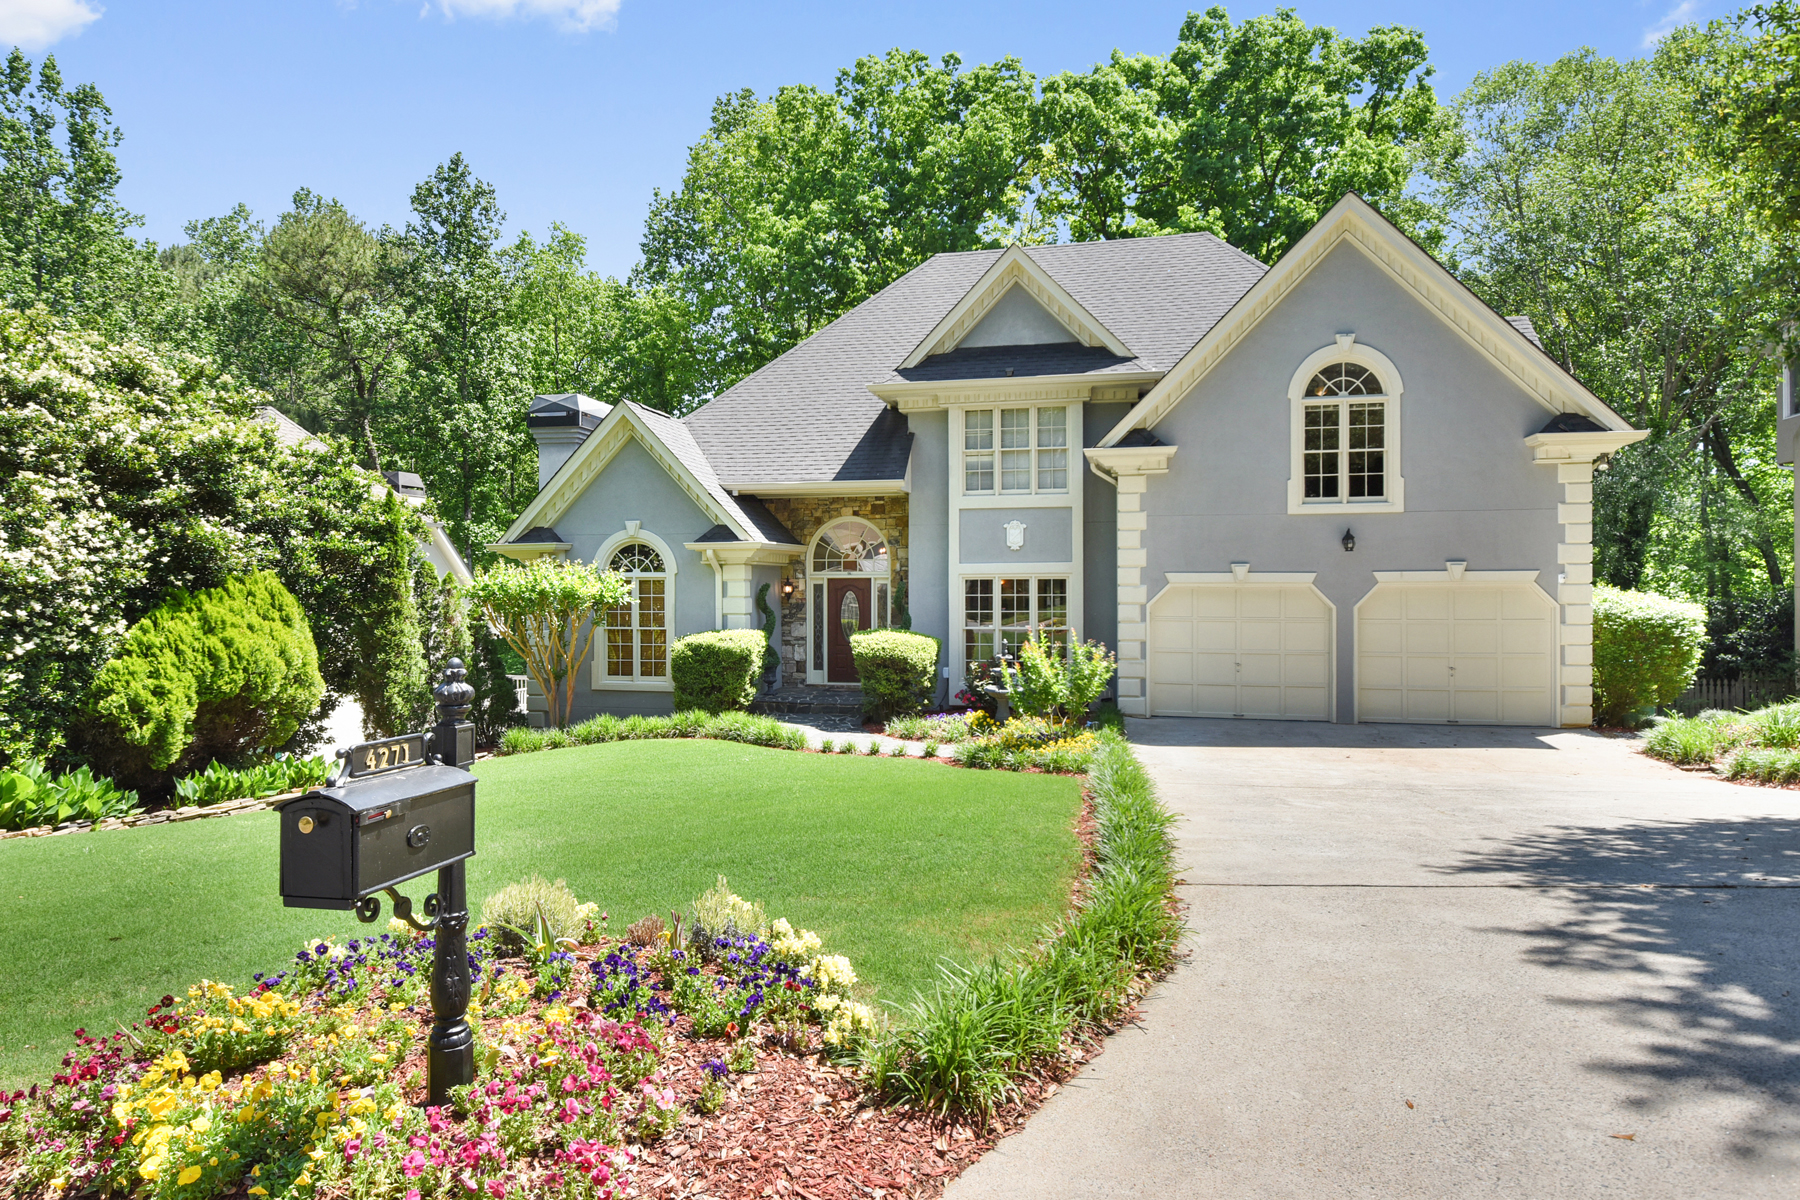 Single Family Home for Sale at Picture Perfect In Vinings Glen 4271 Ridgehurst Drive SE Smyrna, Georgia, 30080 United States